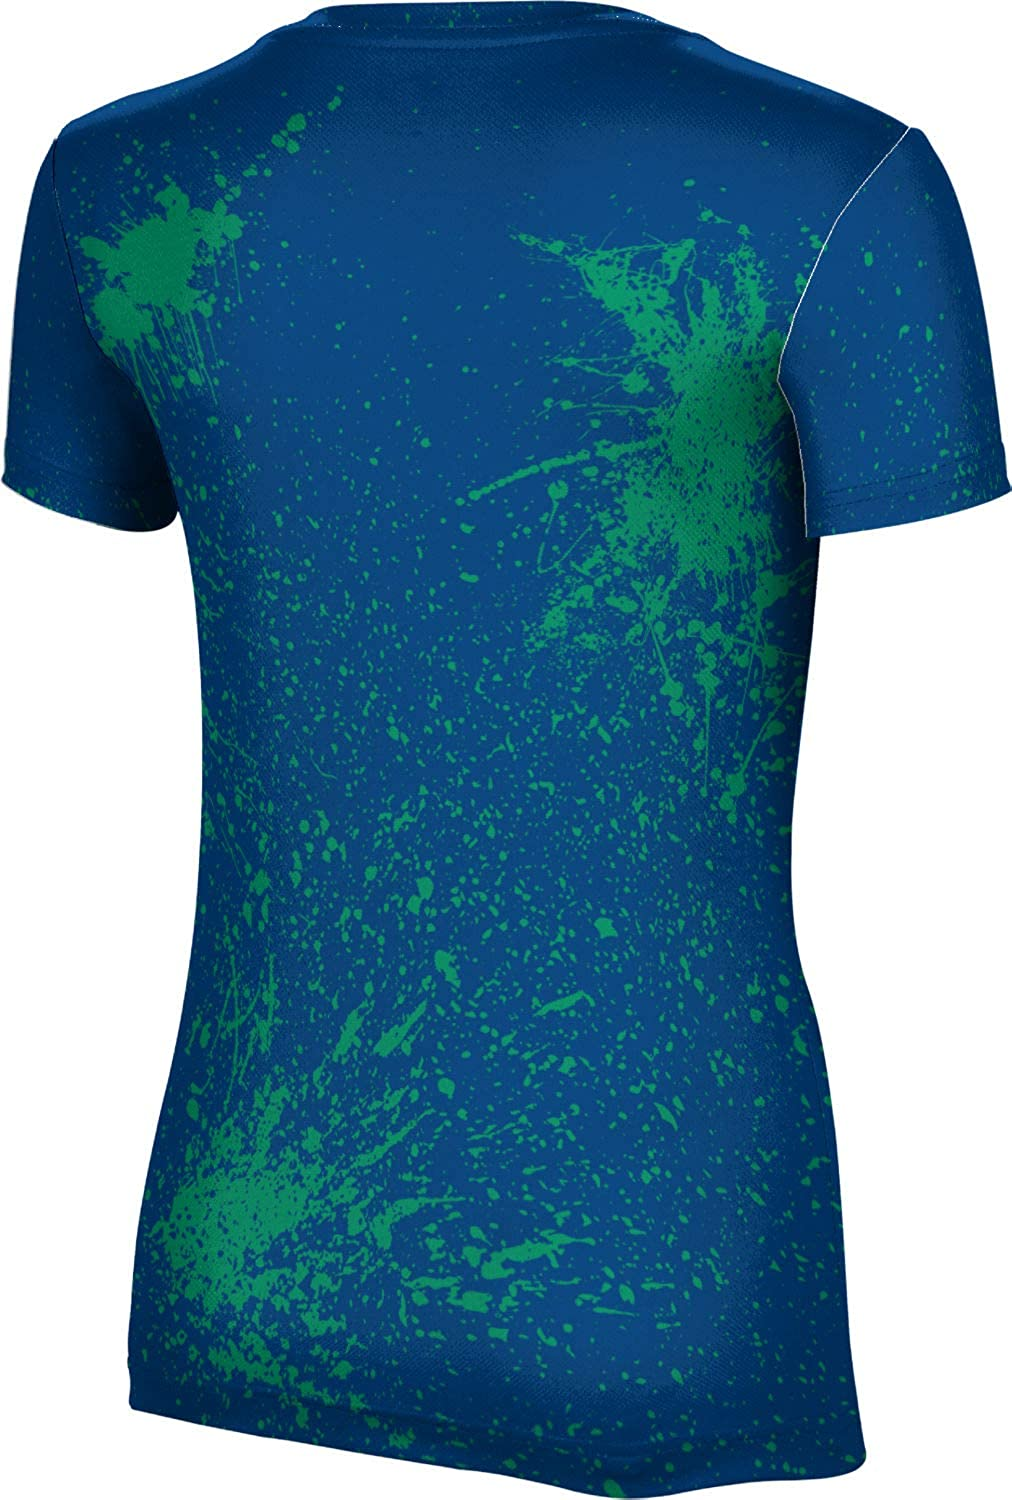 ProSphere Florida Gulf Coast University Girls Performance T-Shirt Splatter